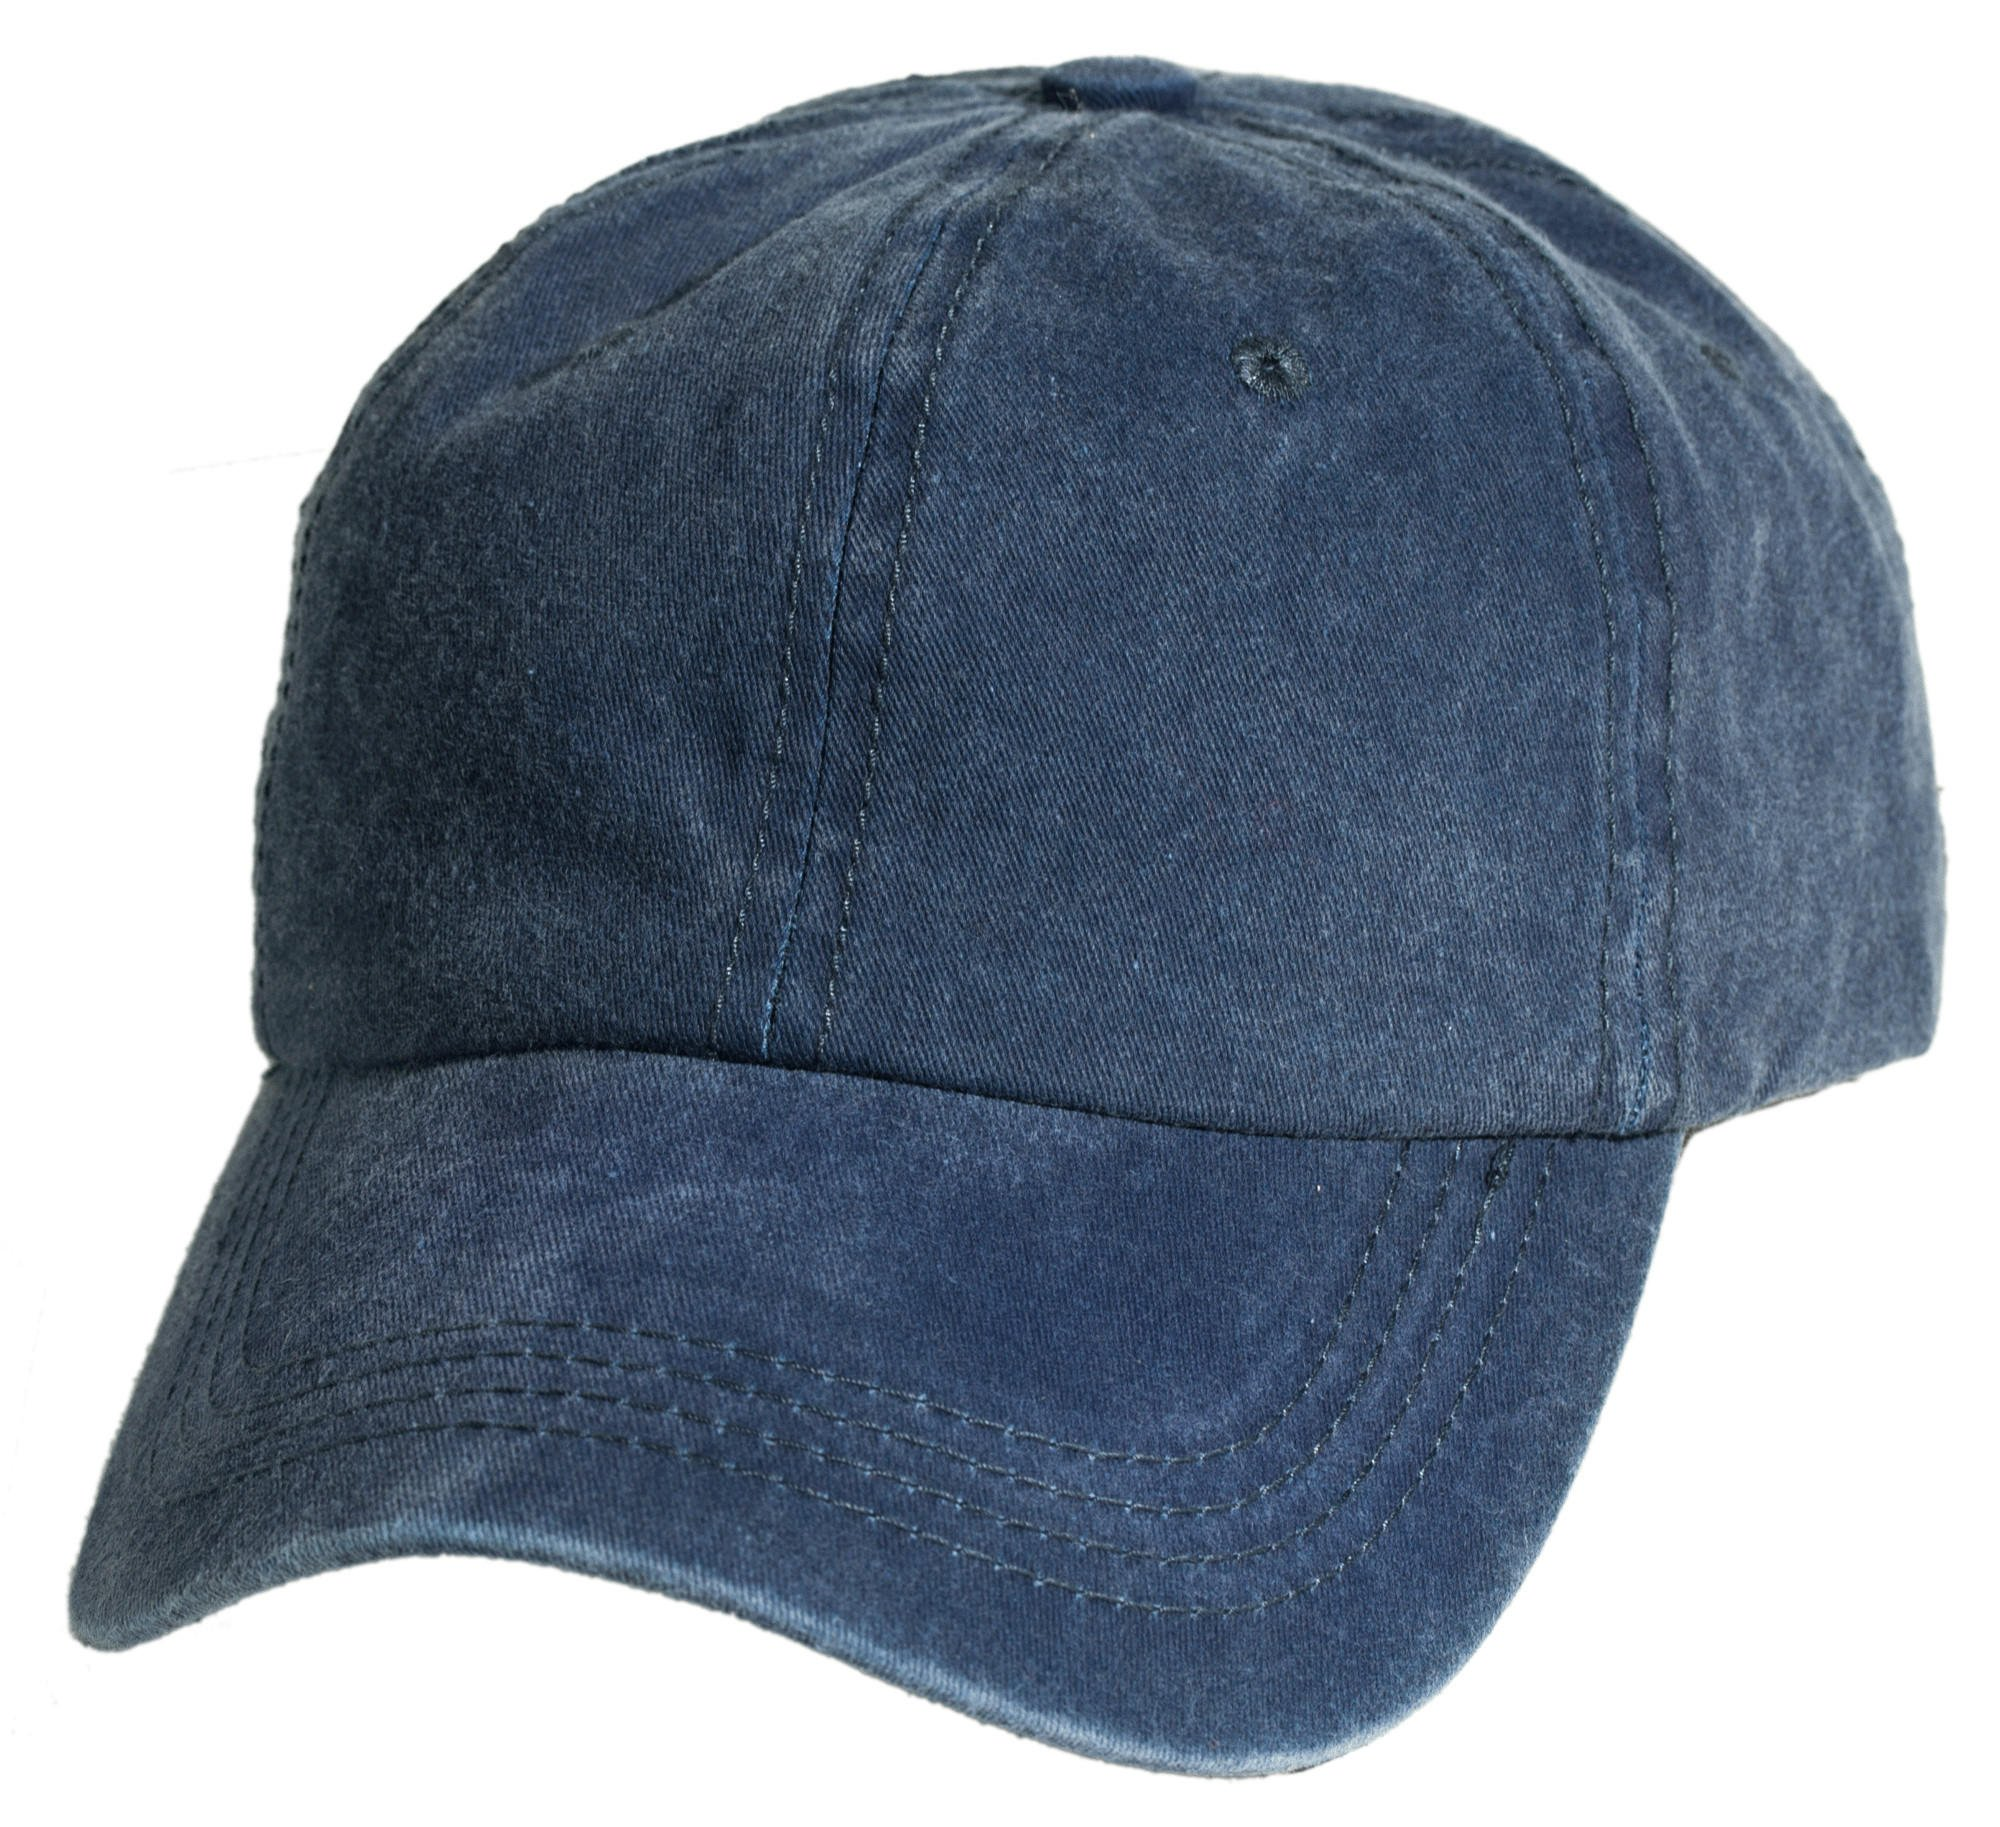 Washed Cotton Baseball Cap by Levine Hat from Levine Hat Co. 3fba936dc97